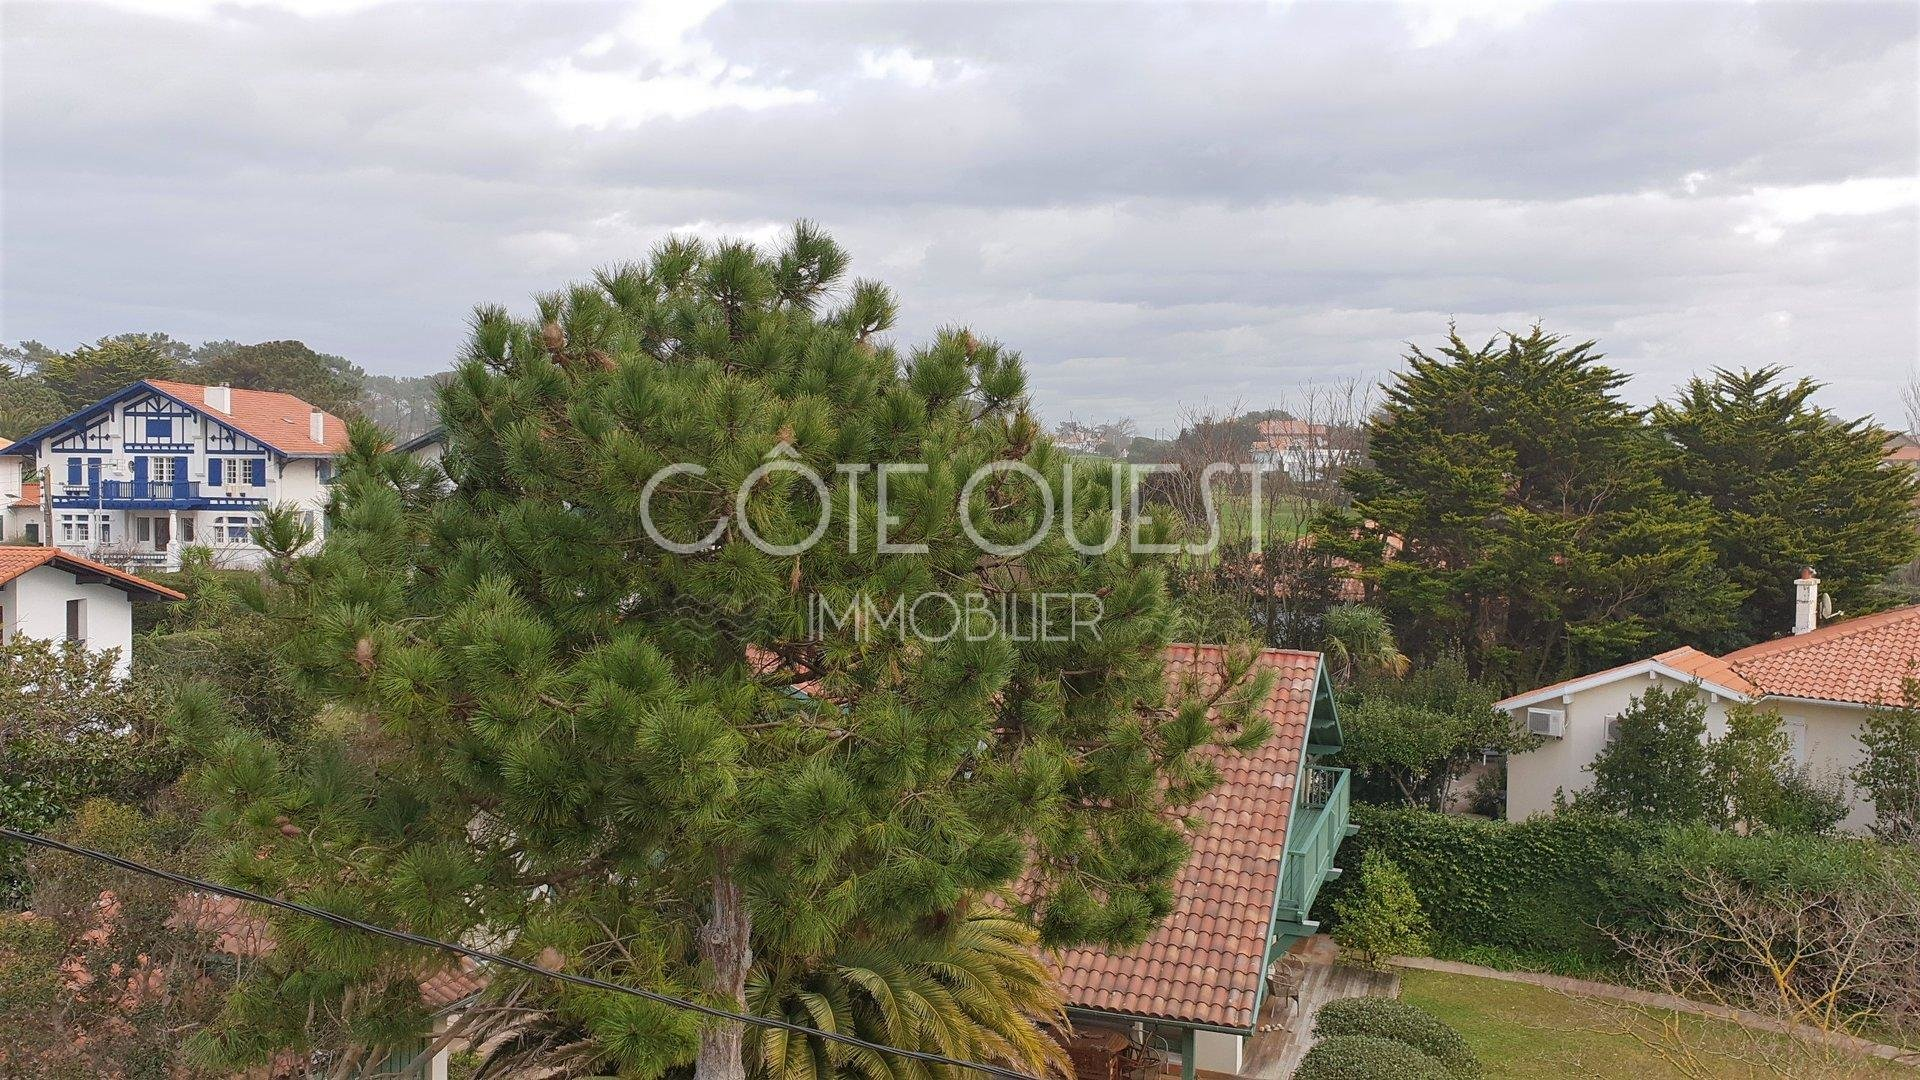 FOR SALE BIARRITZ APARTMENT - SAINT CHARLES